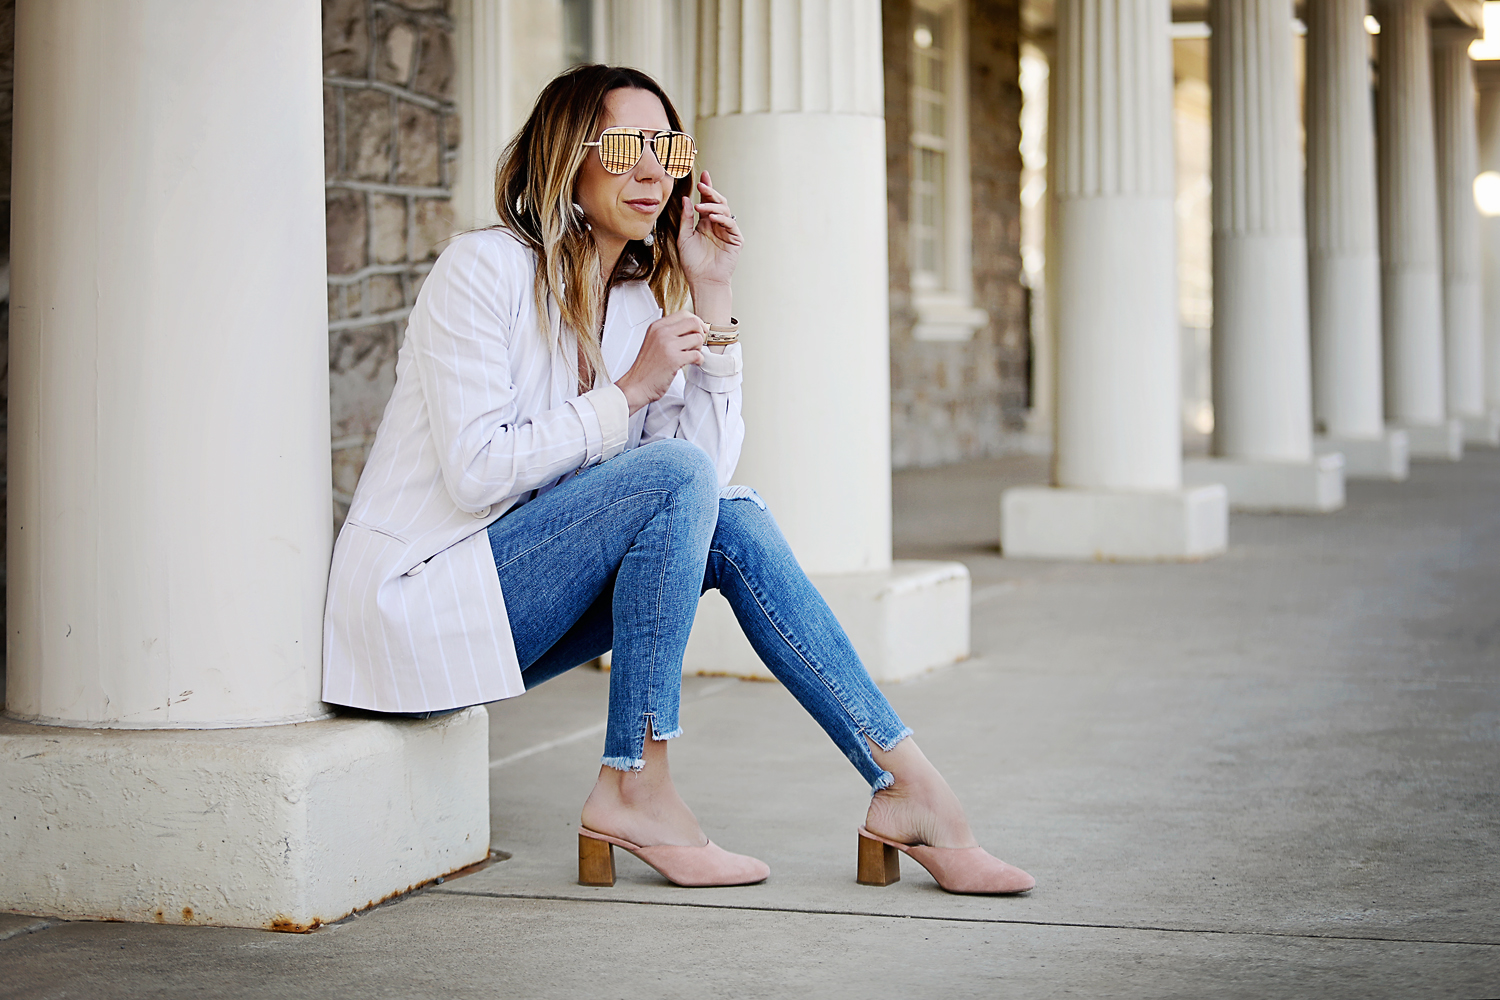 The Motherchic wearing madewell shoes and leith blazer from Nordstrom